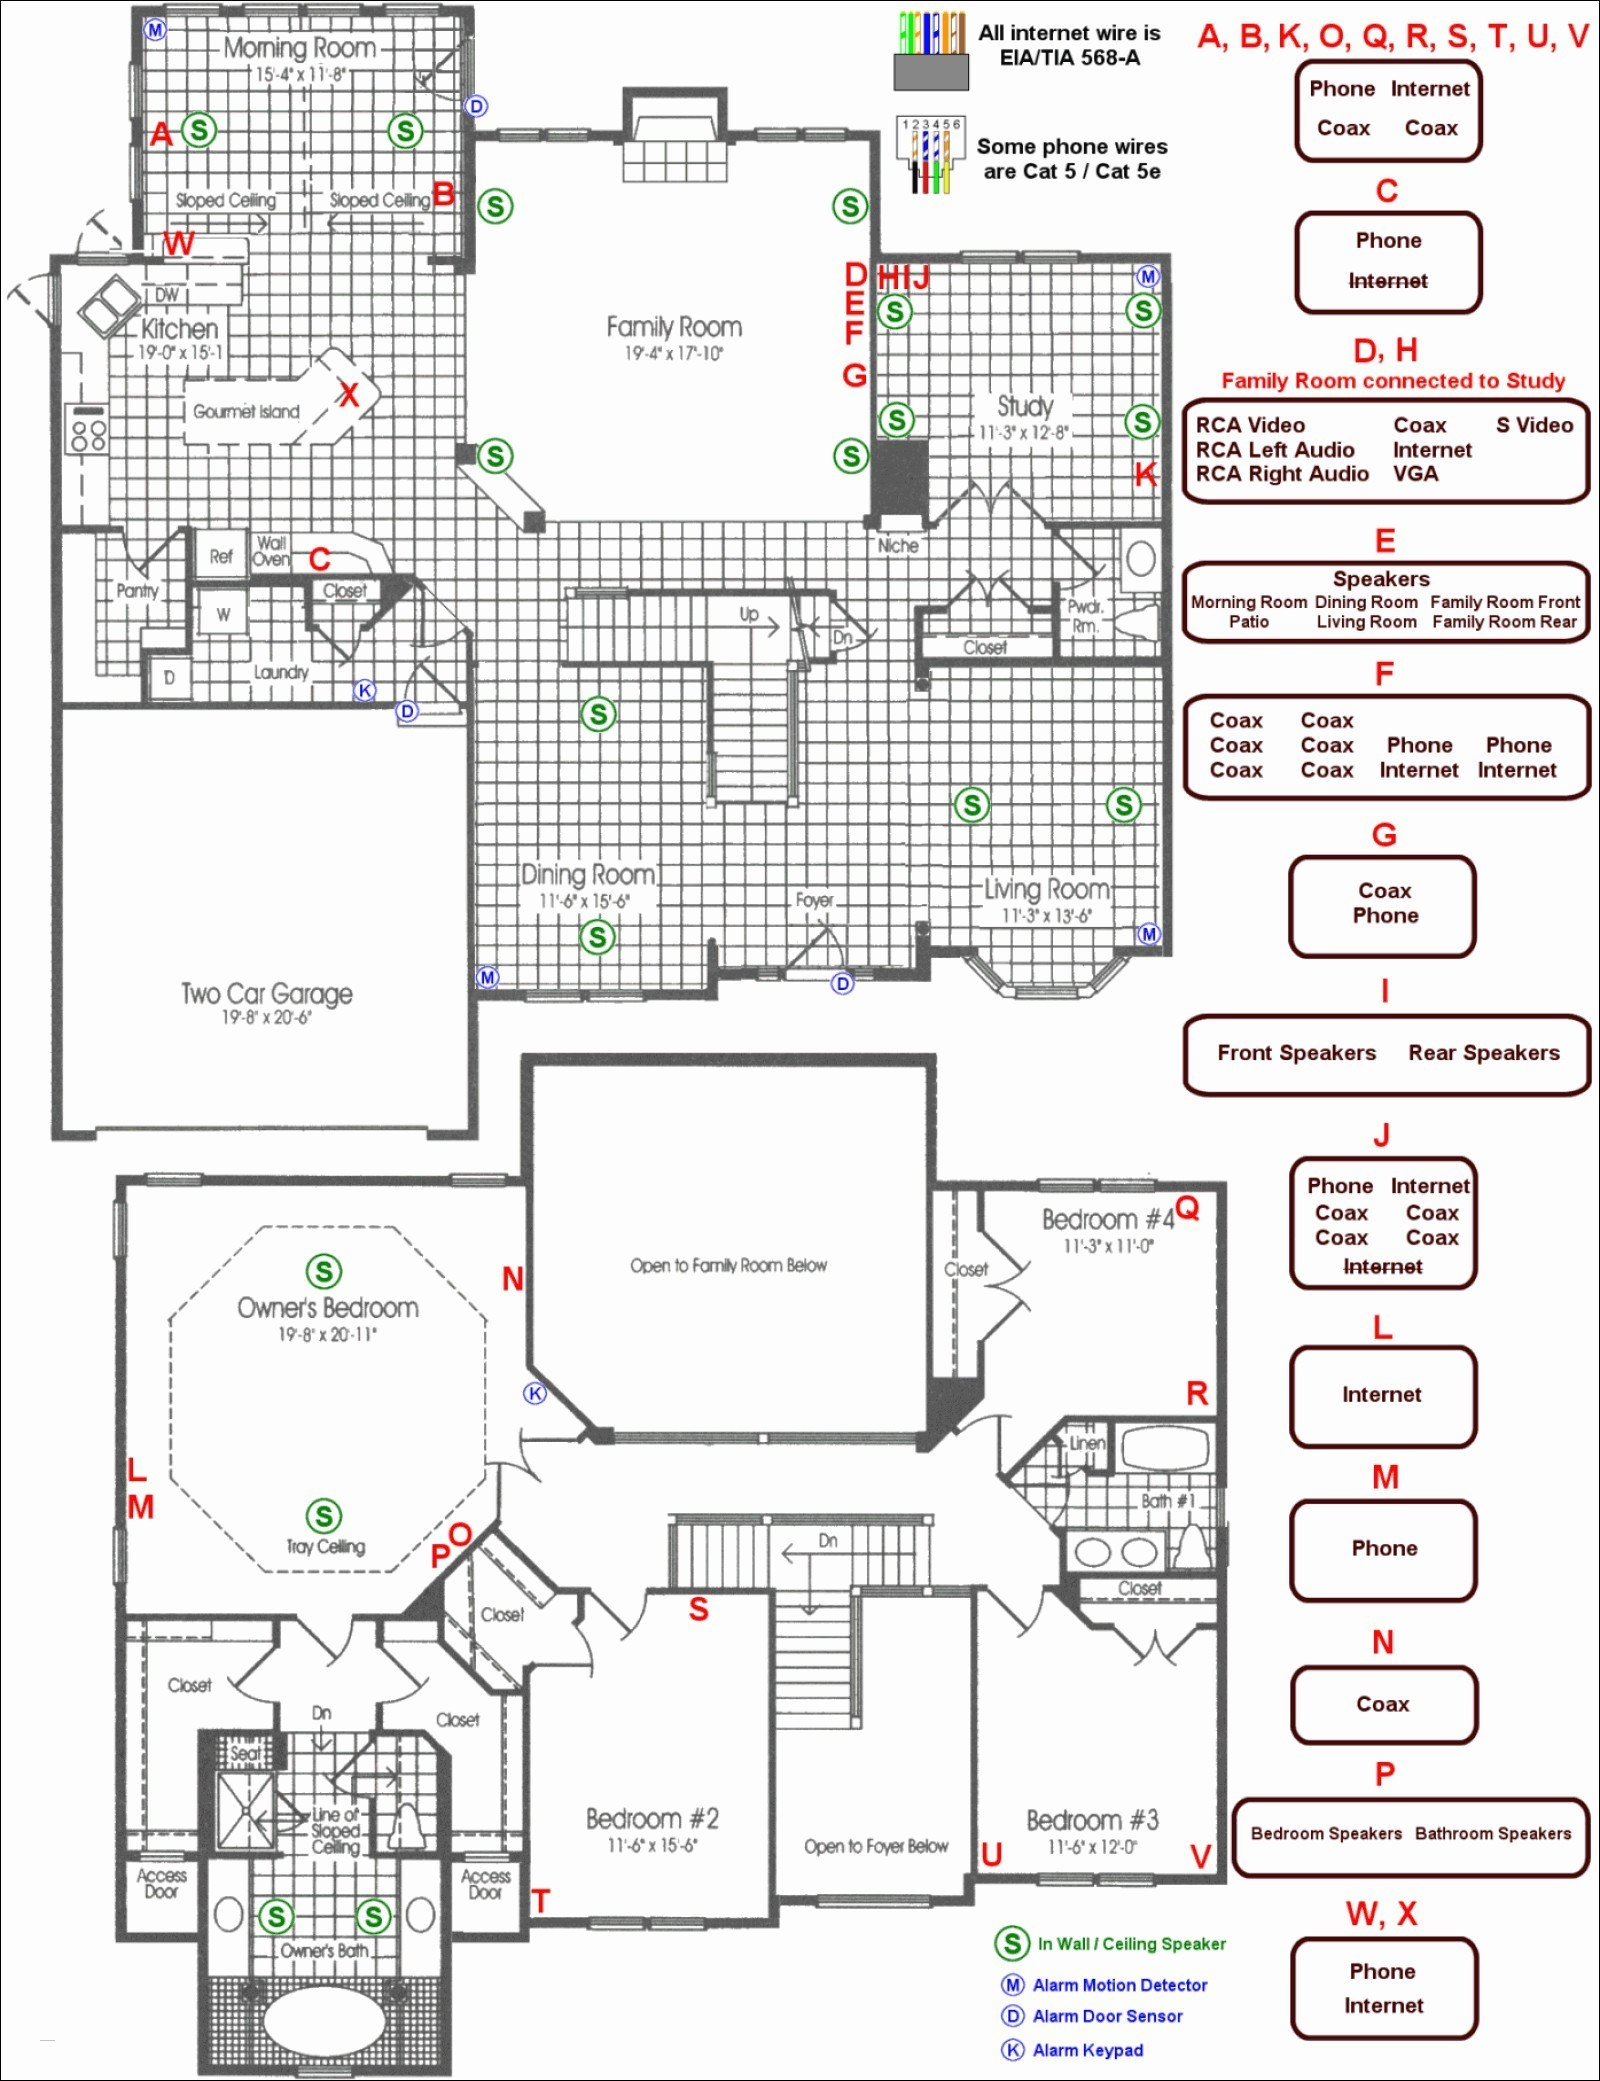 residential wiring diagram software Download-Wiring Diagram Sheets Detail Name electrical house wiring diagram software 20-d